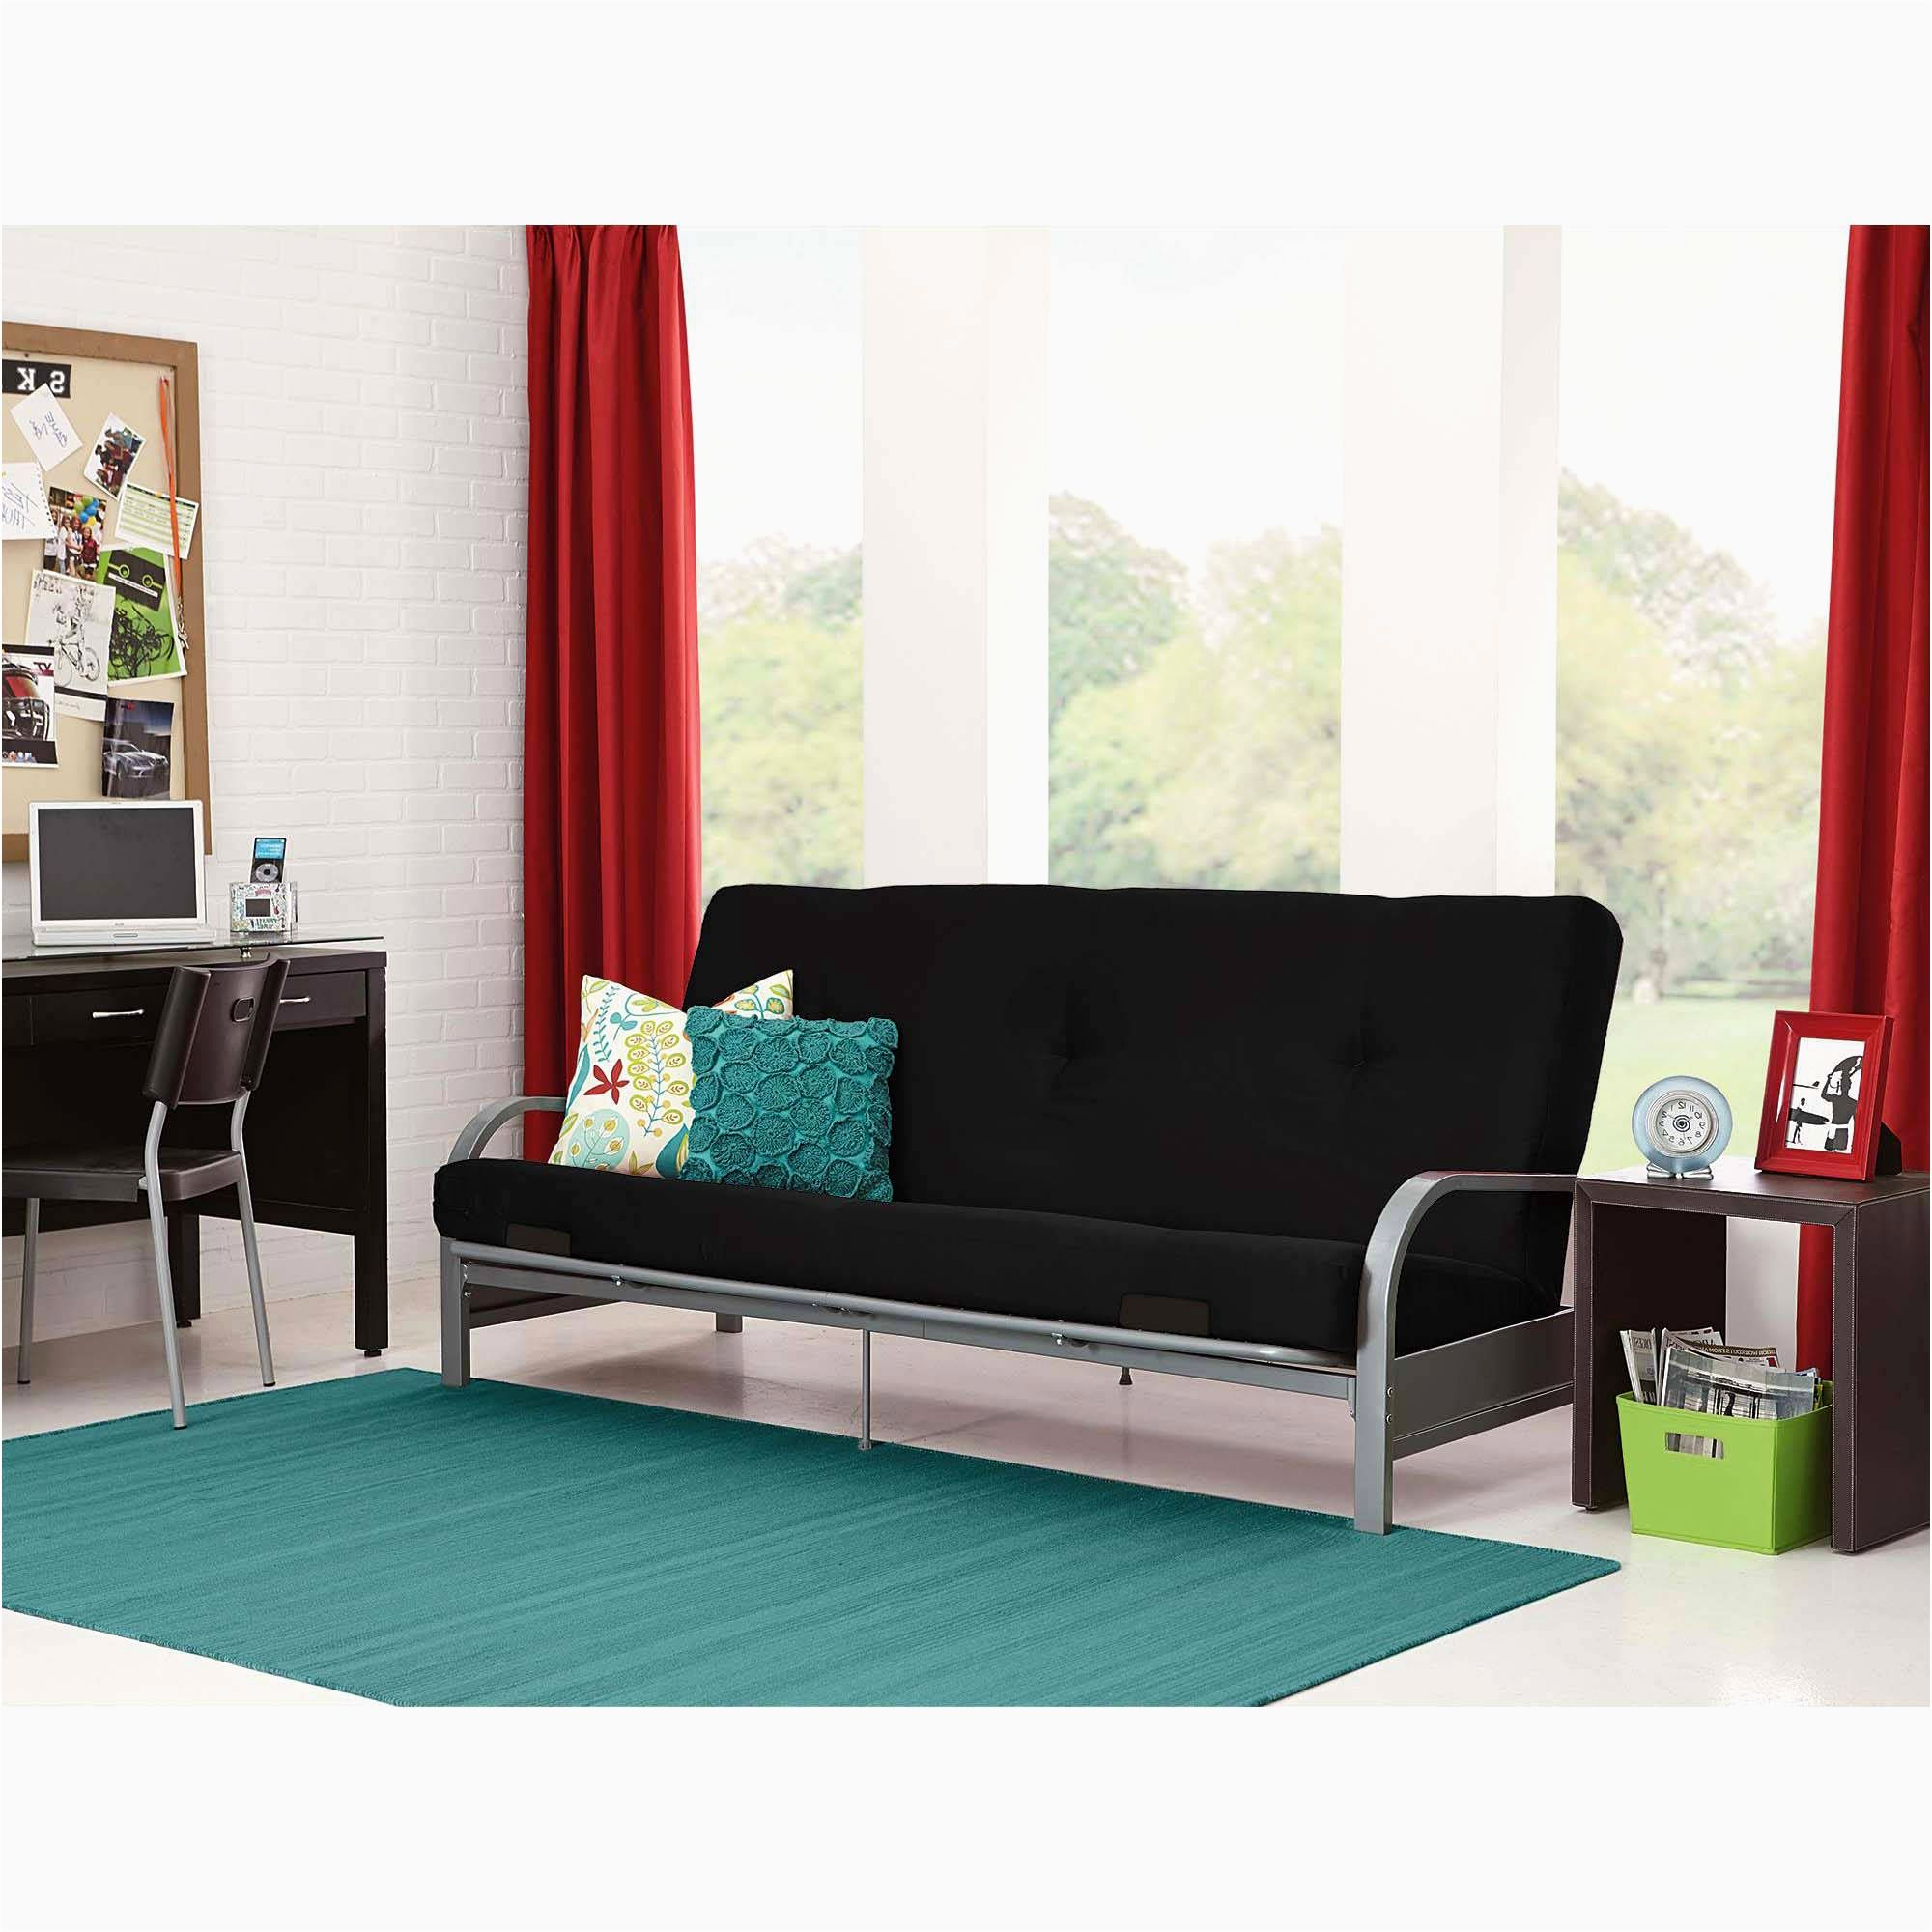 lovely kebo futon sofa bed wallpaper-Stunning Kebo Futon sofa Bed Image